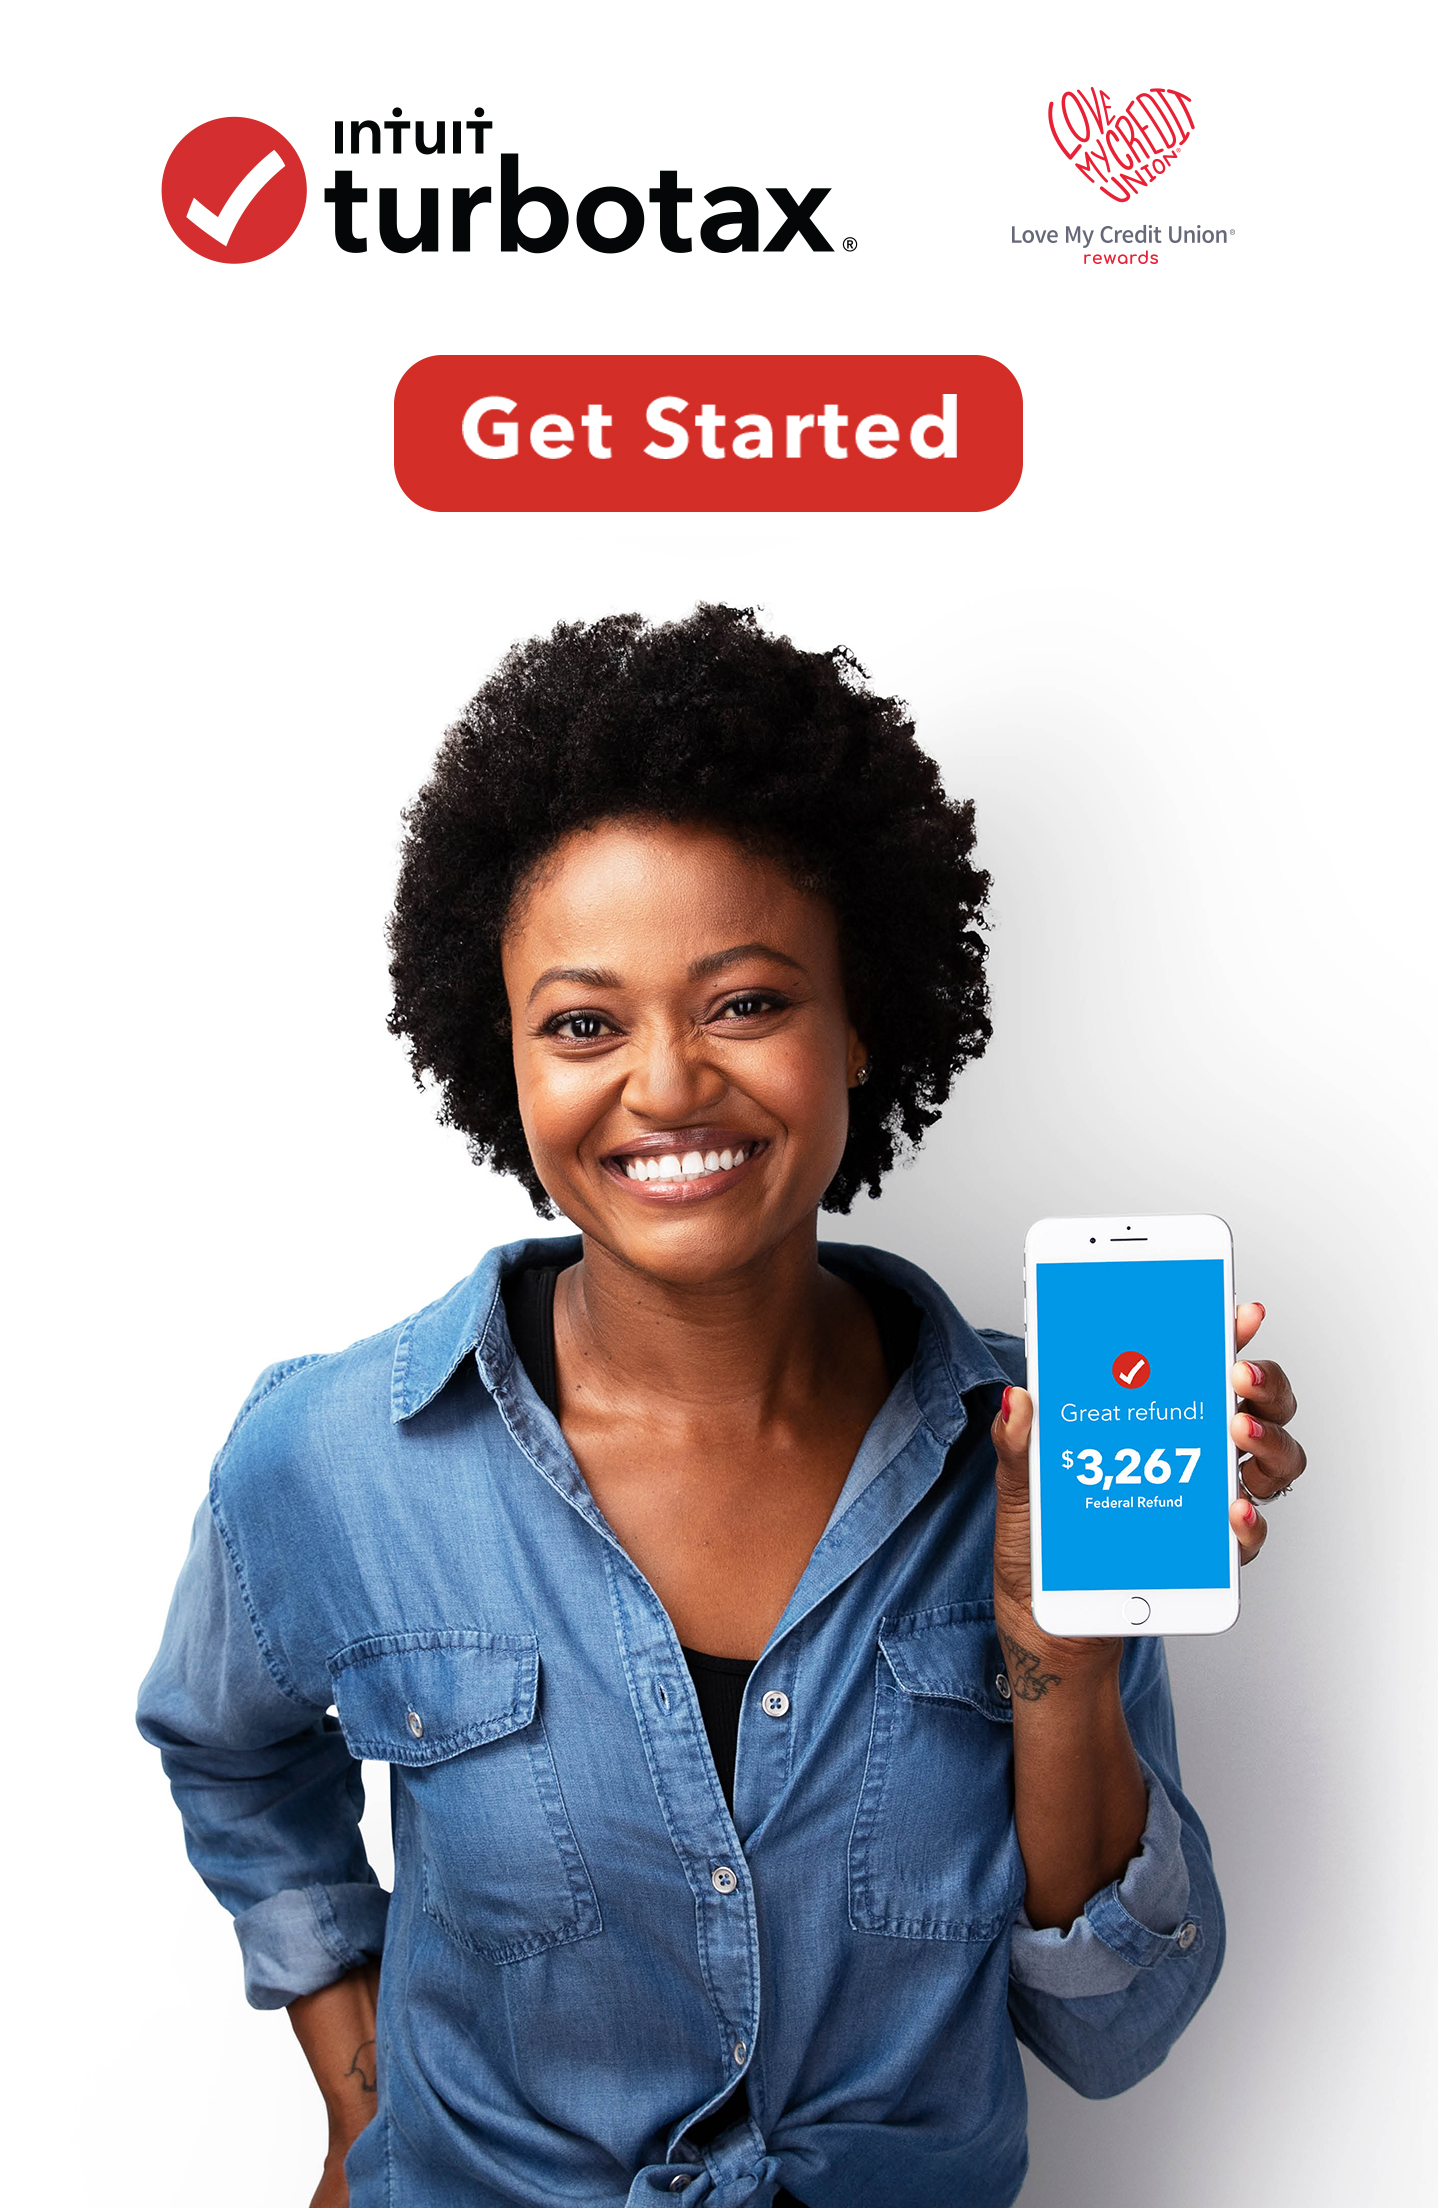 Save up to $15 on TurboTax. Get started!